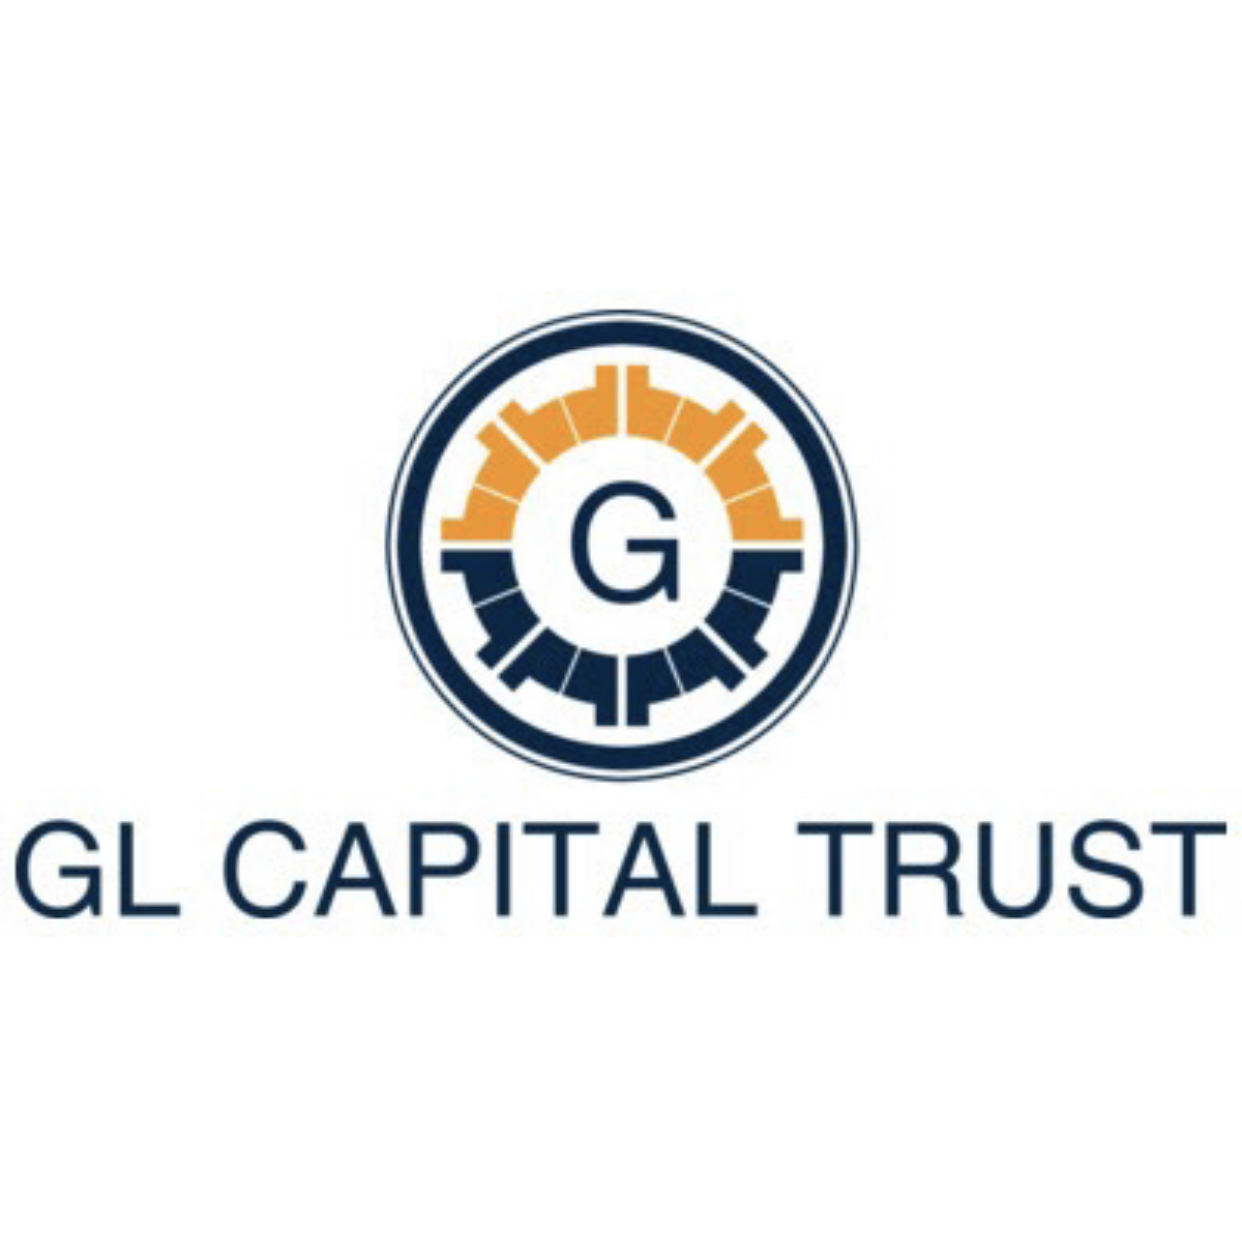 Introducing GLCapital Trust, a one-stop destination for entrepreneurs who want to grow their brands from scratch